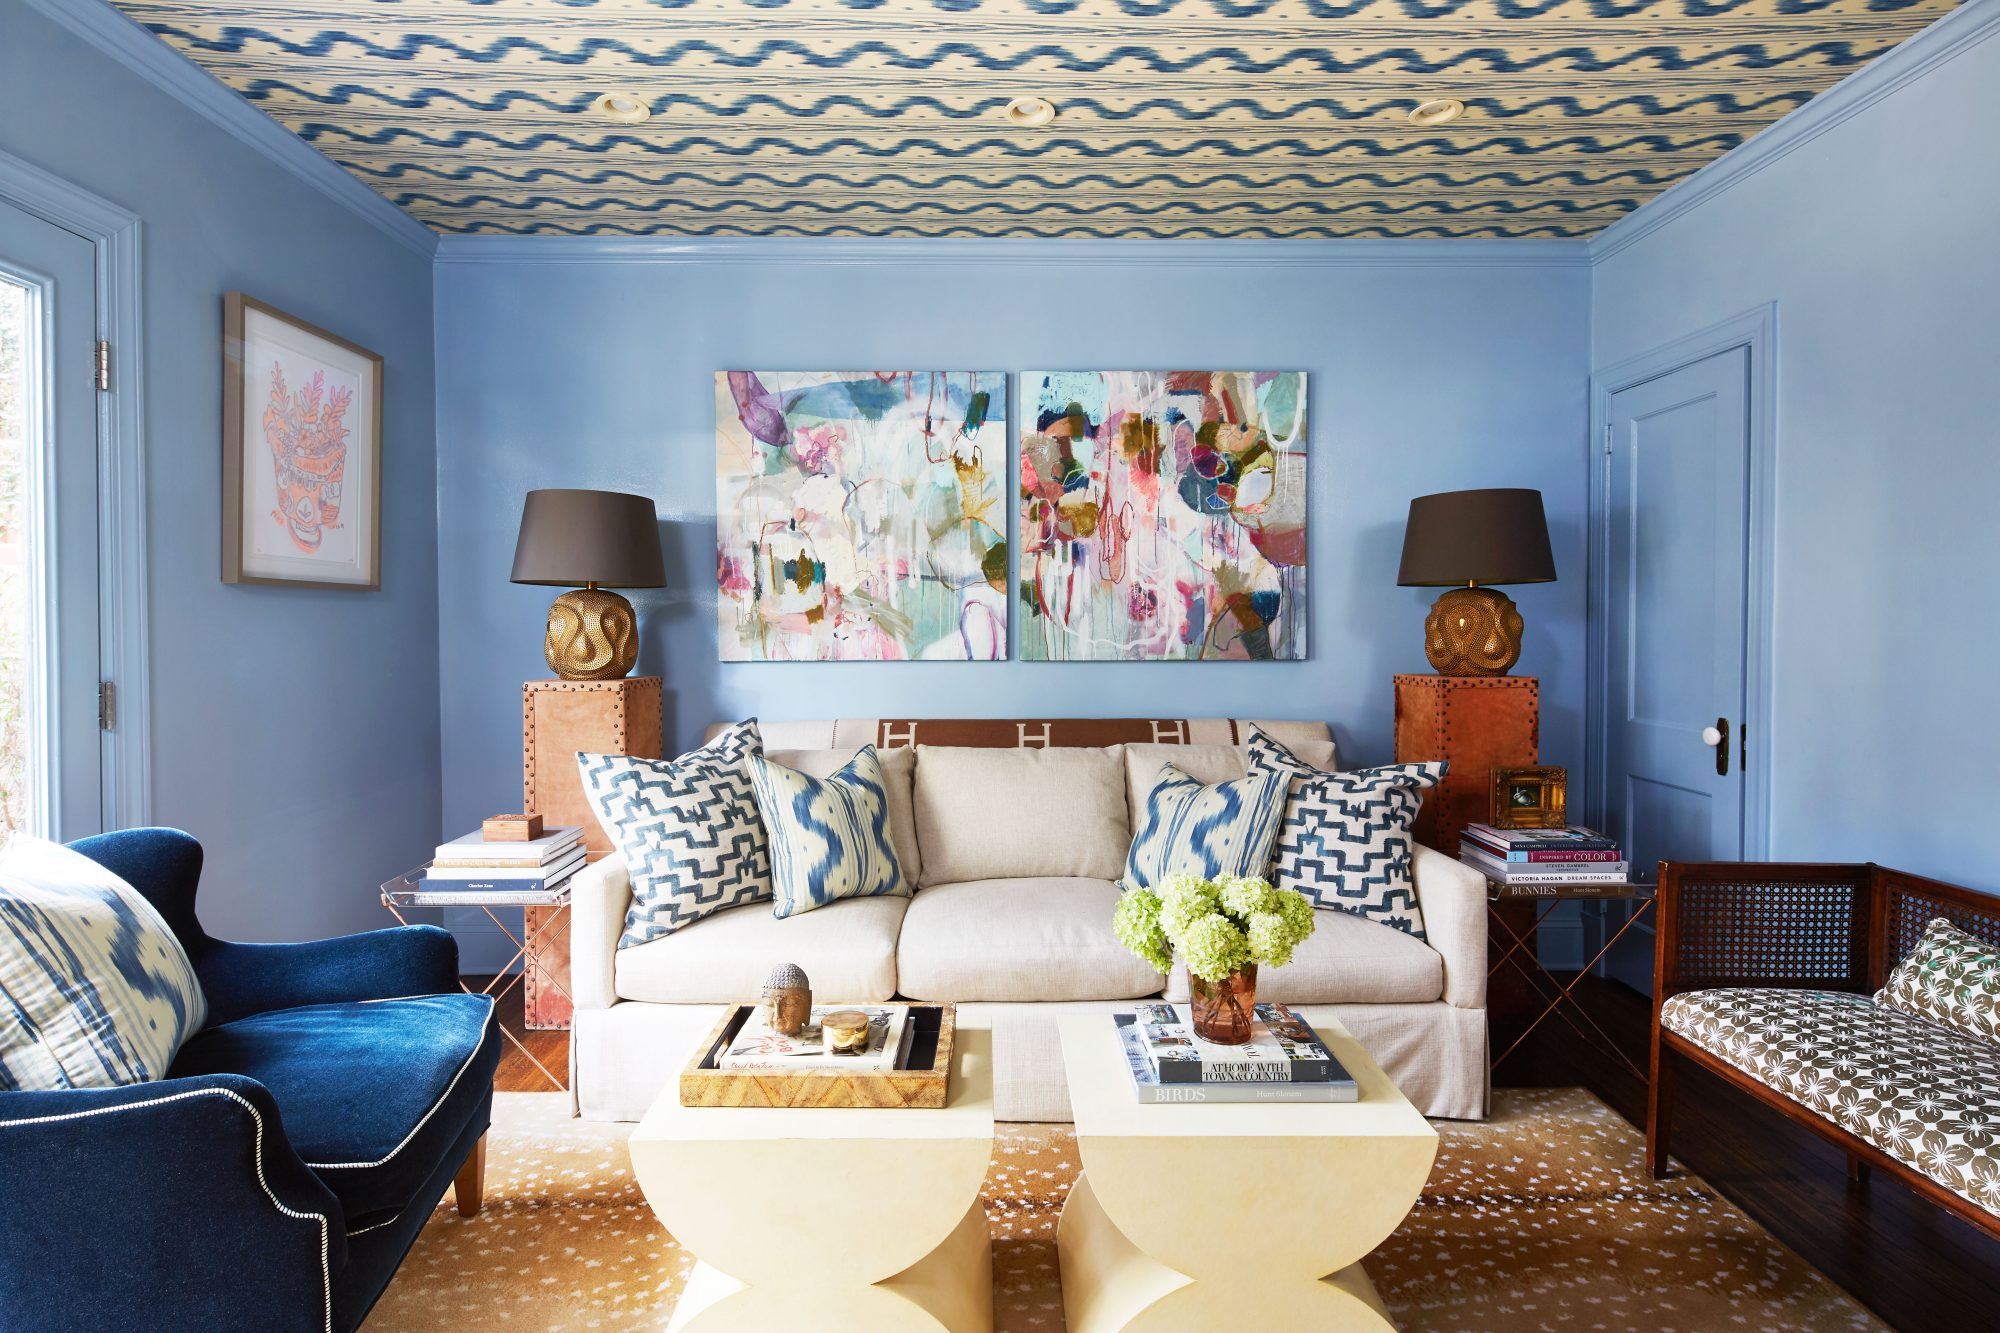 Study with light blue walls, wallpapered ceiling, and white sofa